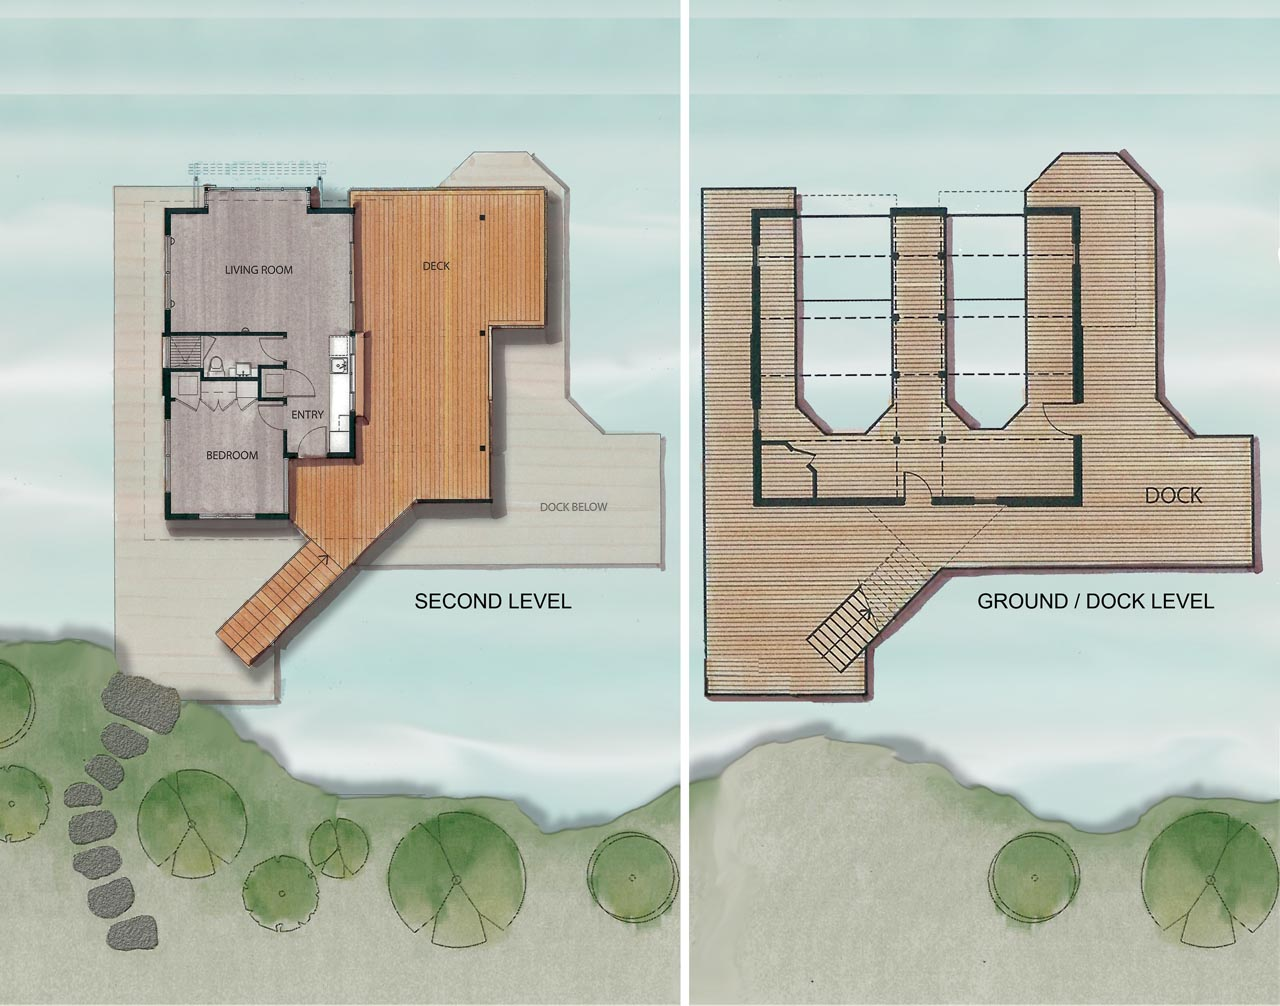 Ground / Dock, Second Level Plan, Boathouse Renovation and Extension in Muskoka Lakes, Ontario